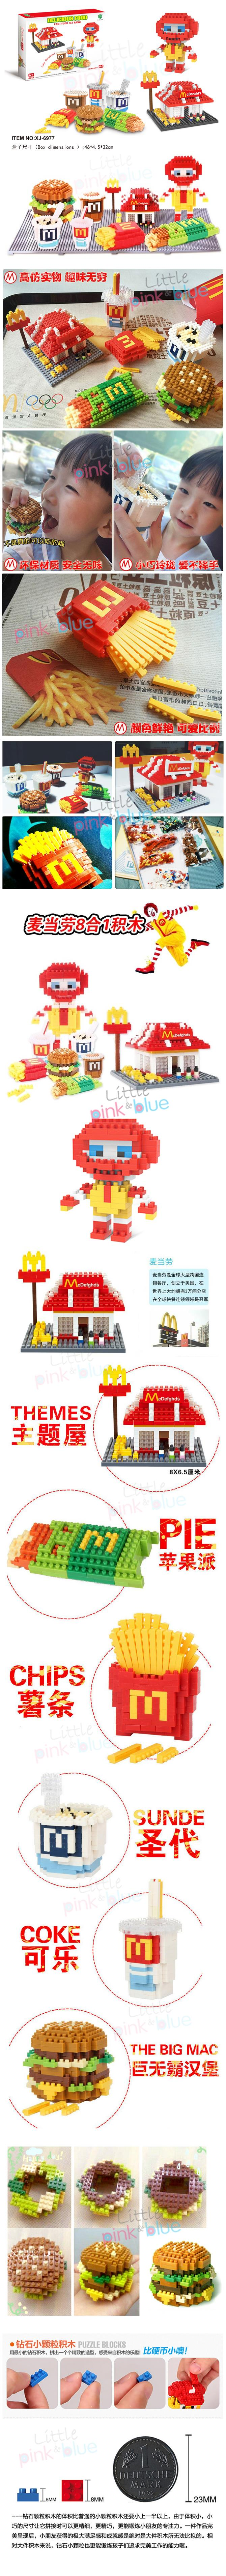 McDonald's Food Icons Nano Block Collection Limited Edition 8 in1